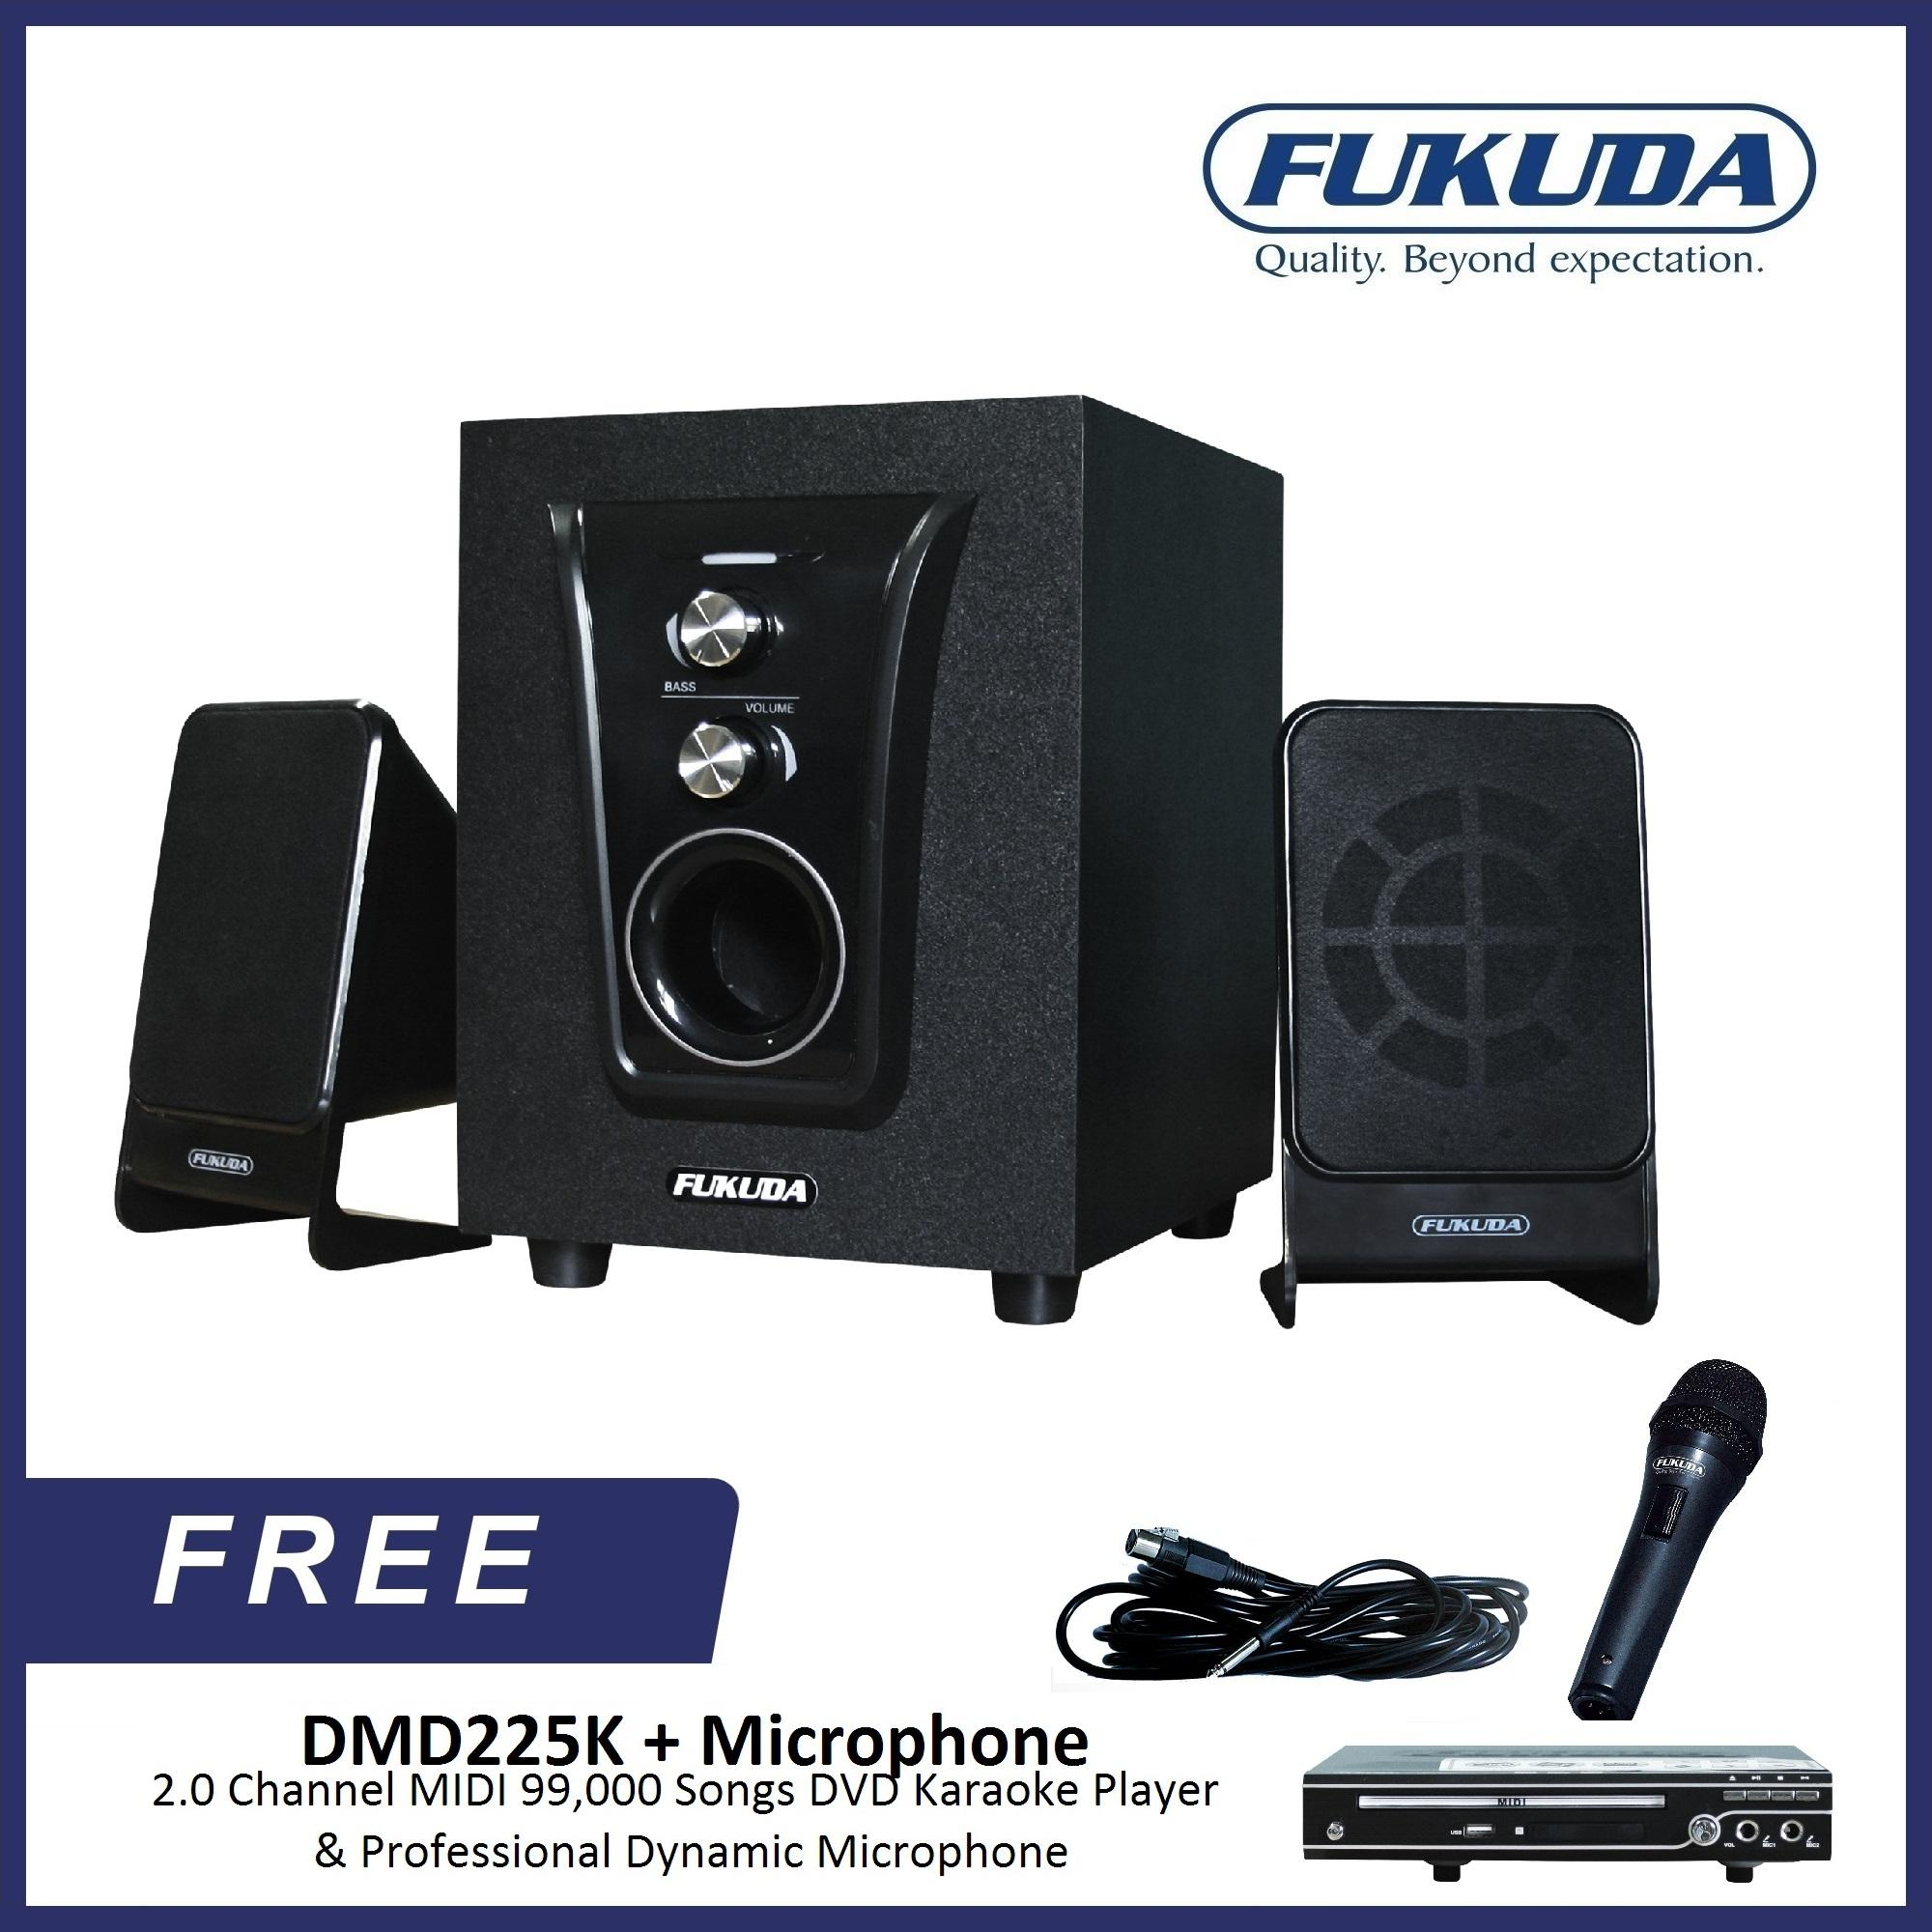 Speaker For Sale Bluetooth Prices Brands Specs In Computers Help Front Control Panel How Is The Audio Mic Wiring Fukuda Fht100i 21 Channel Home Theater Bundle With Dmd225k 20 Midi 99000 Songs Dvd